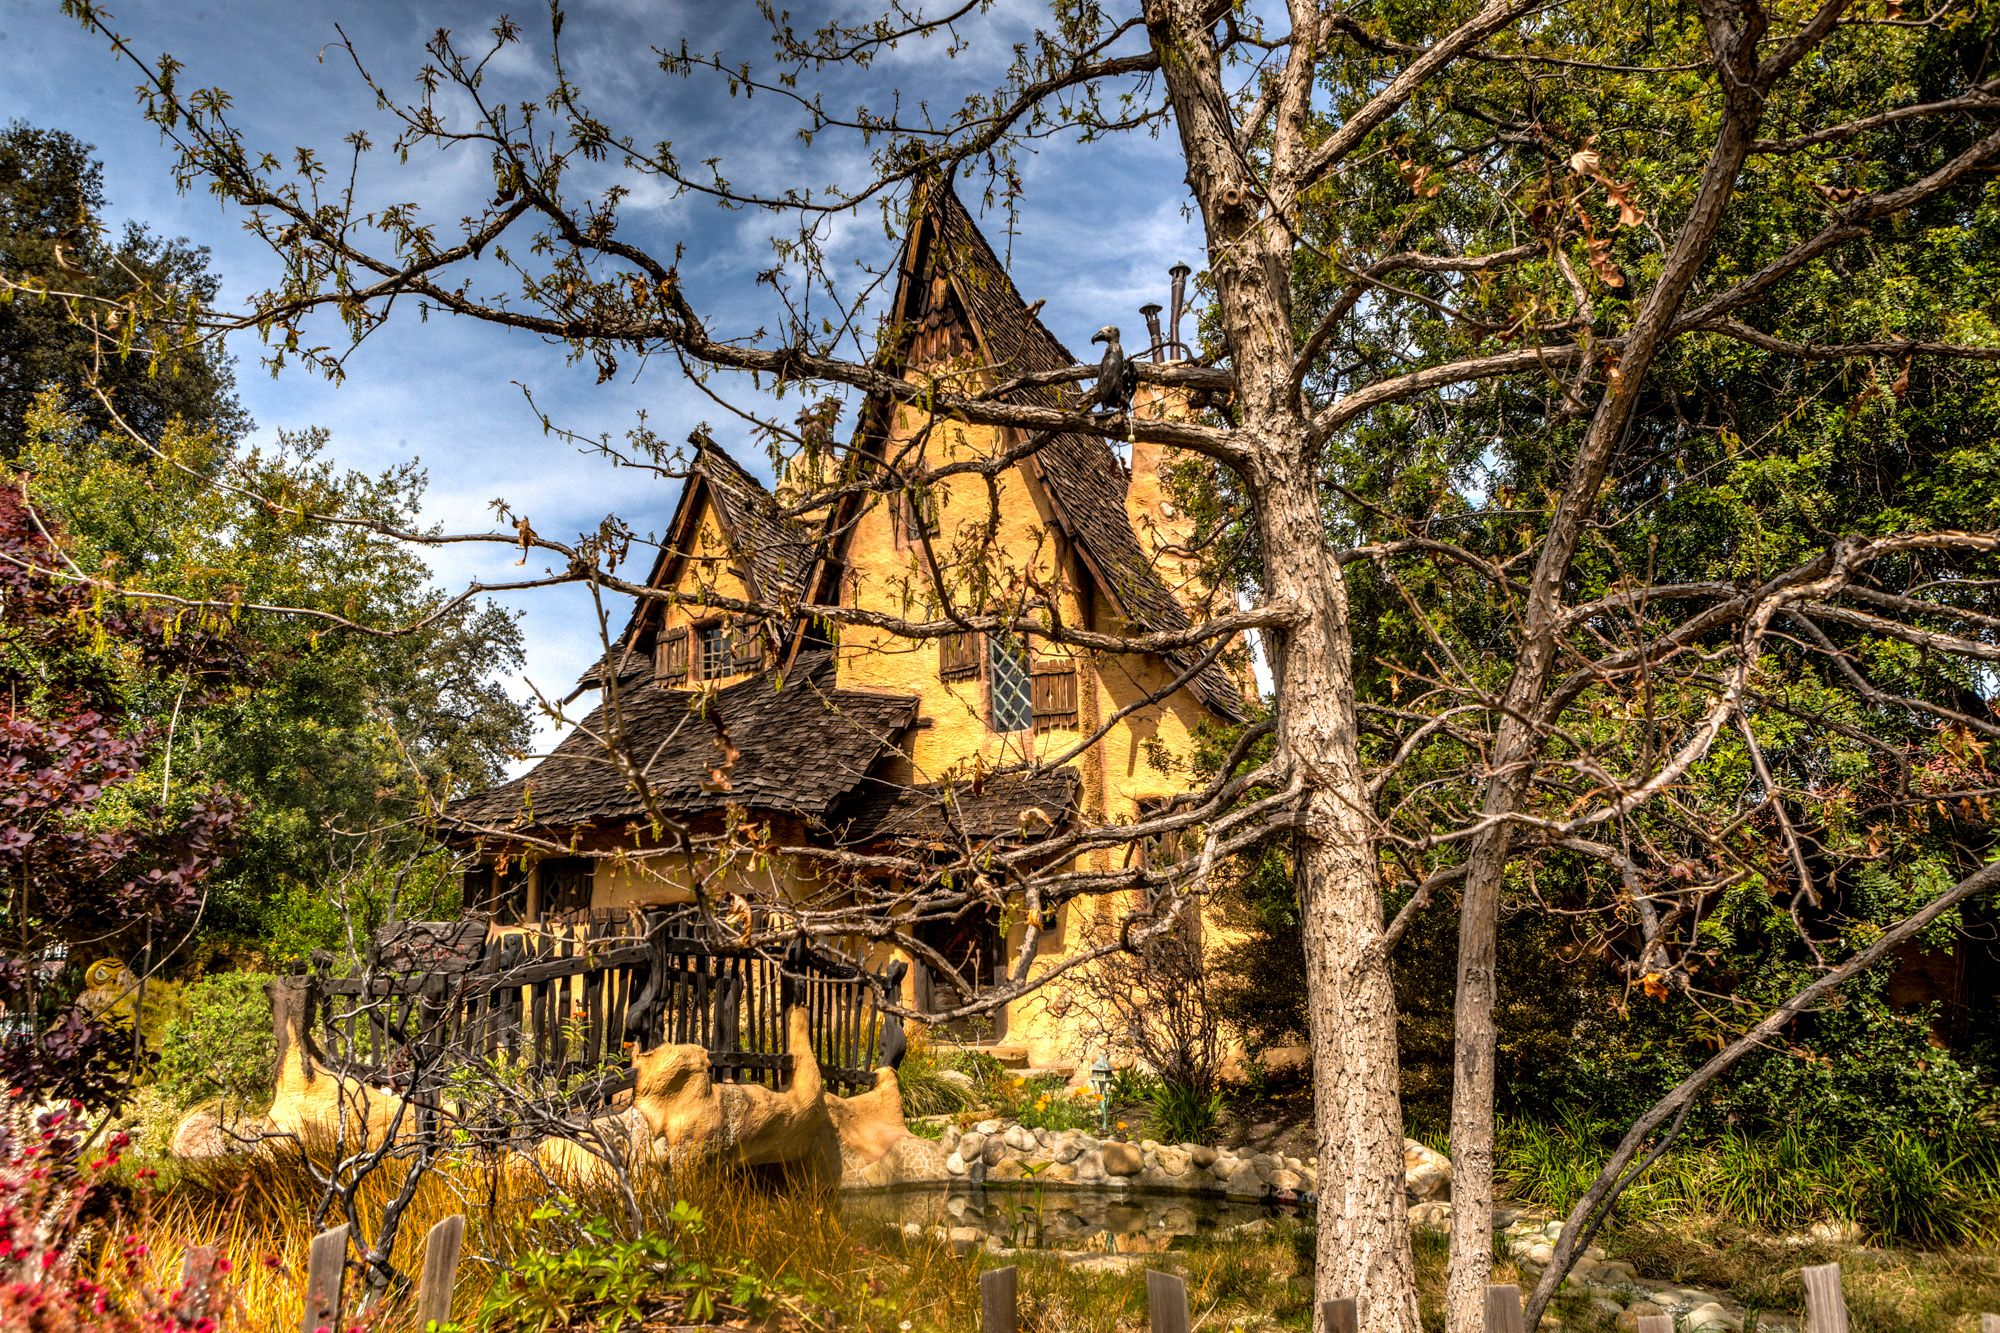 The Witch's House in Beverly Hills